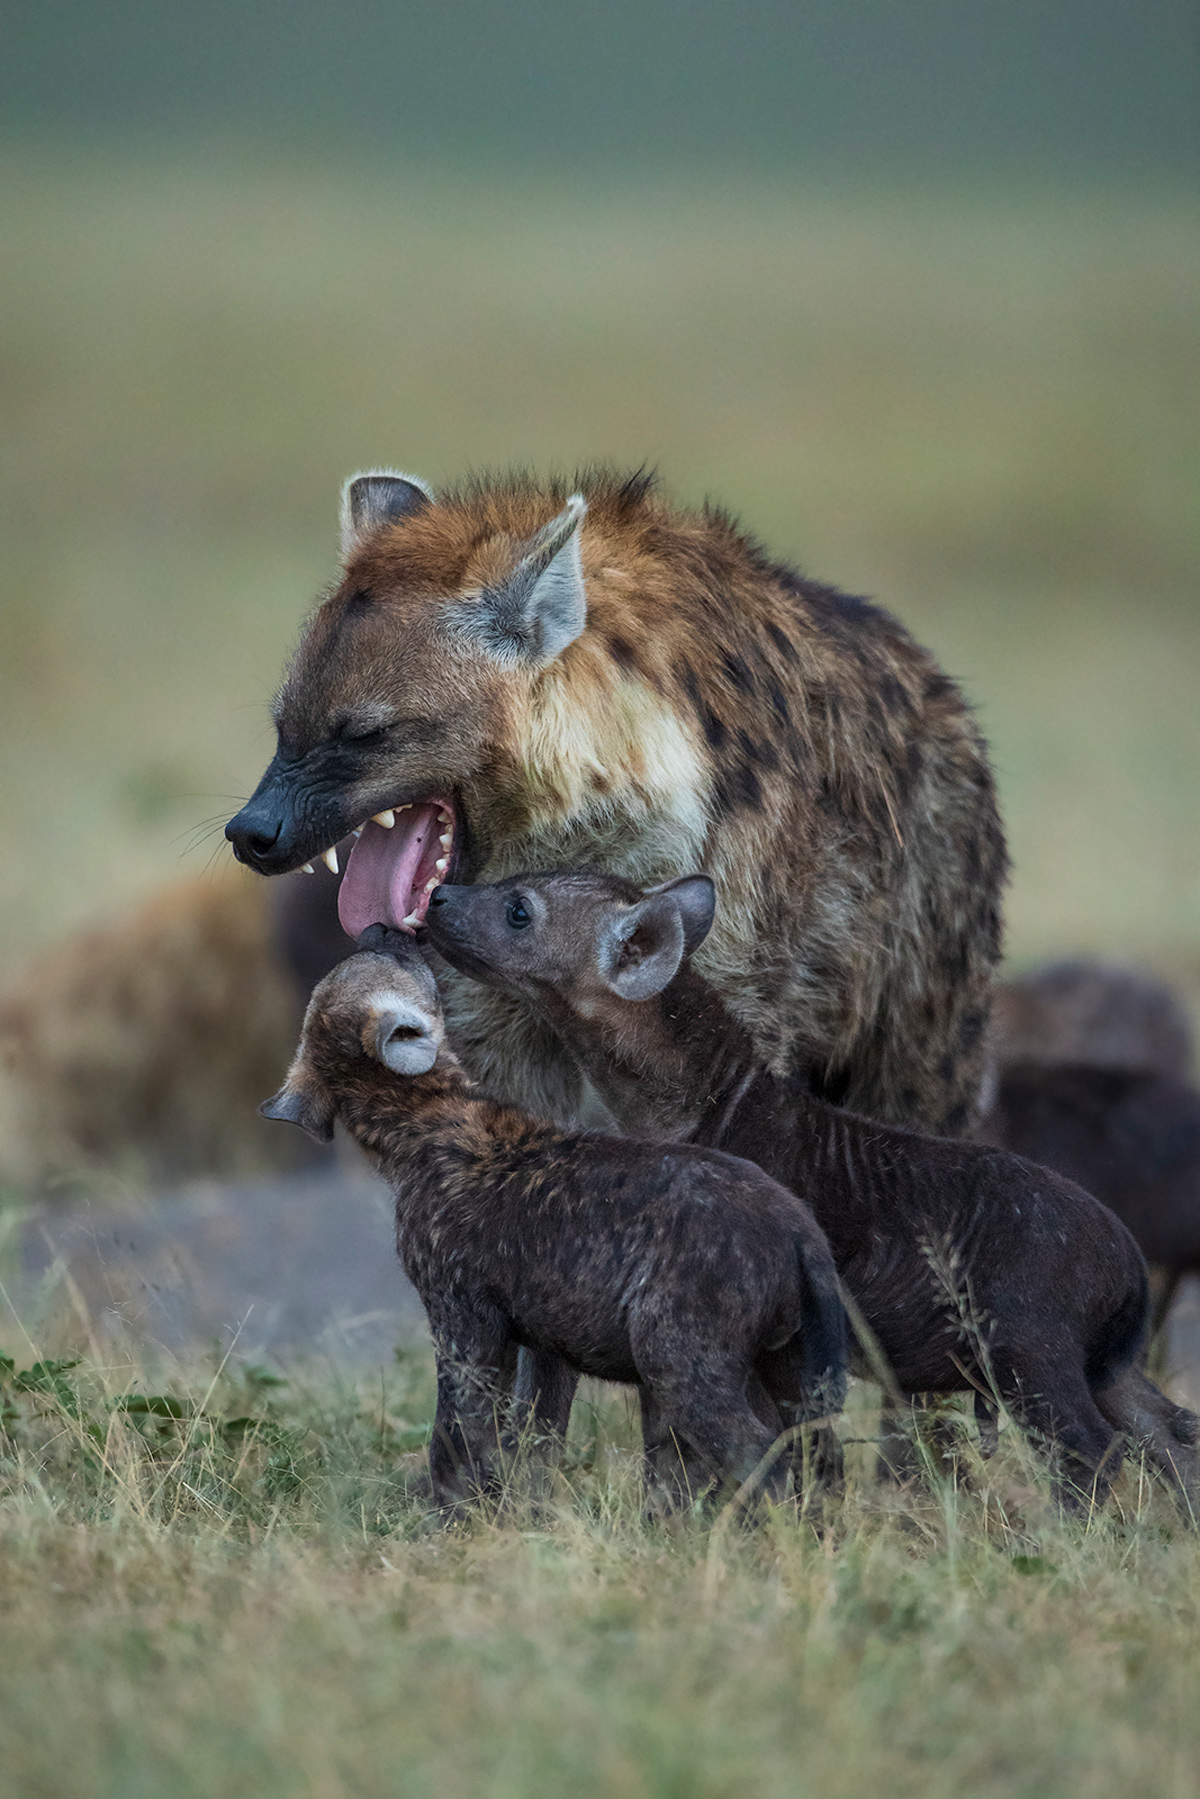 Hyena pups and their customary inspection of the mouths of the adults who return to the den in the evening, Maasai Mara National Reserve, Kenya © Krishnan Gopala Krishnan